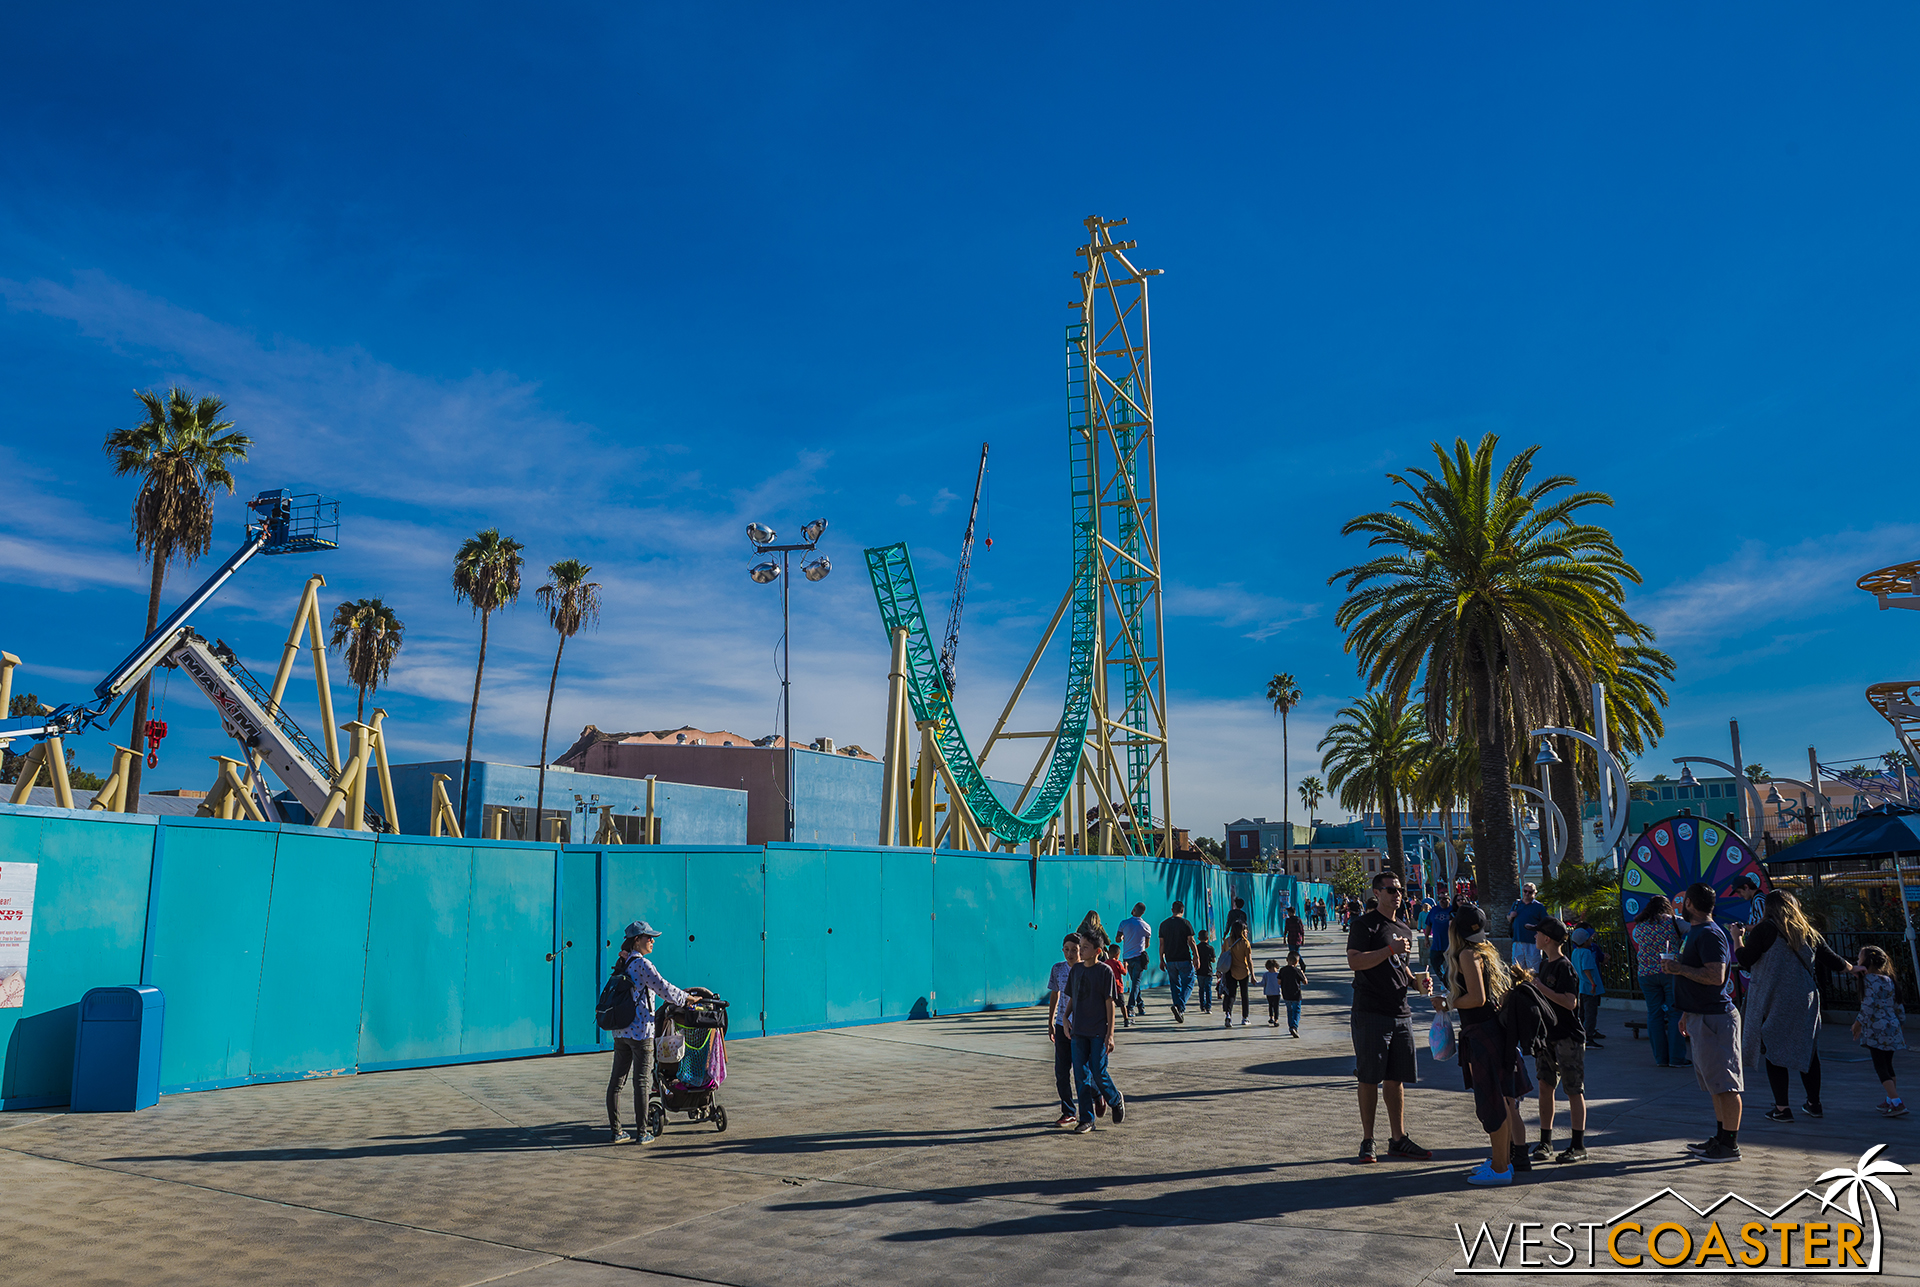 Compared to Boomerang, HangTime will make much more of a presence.